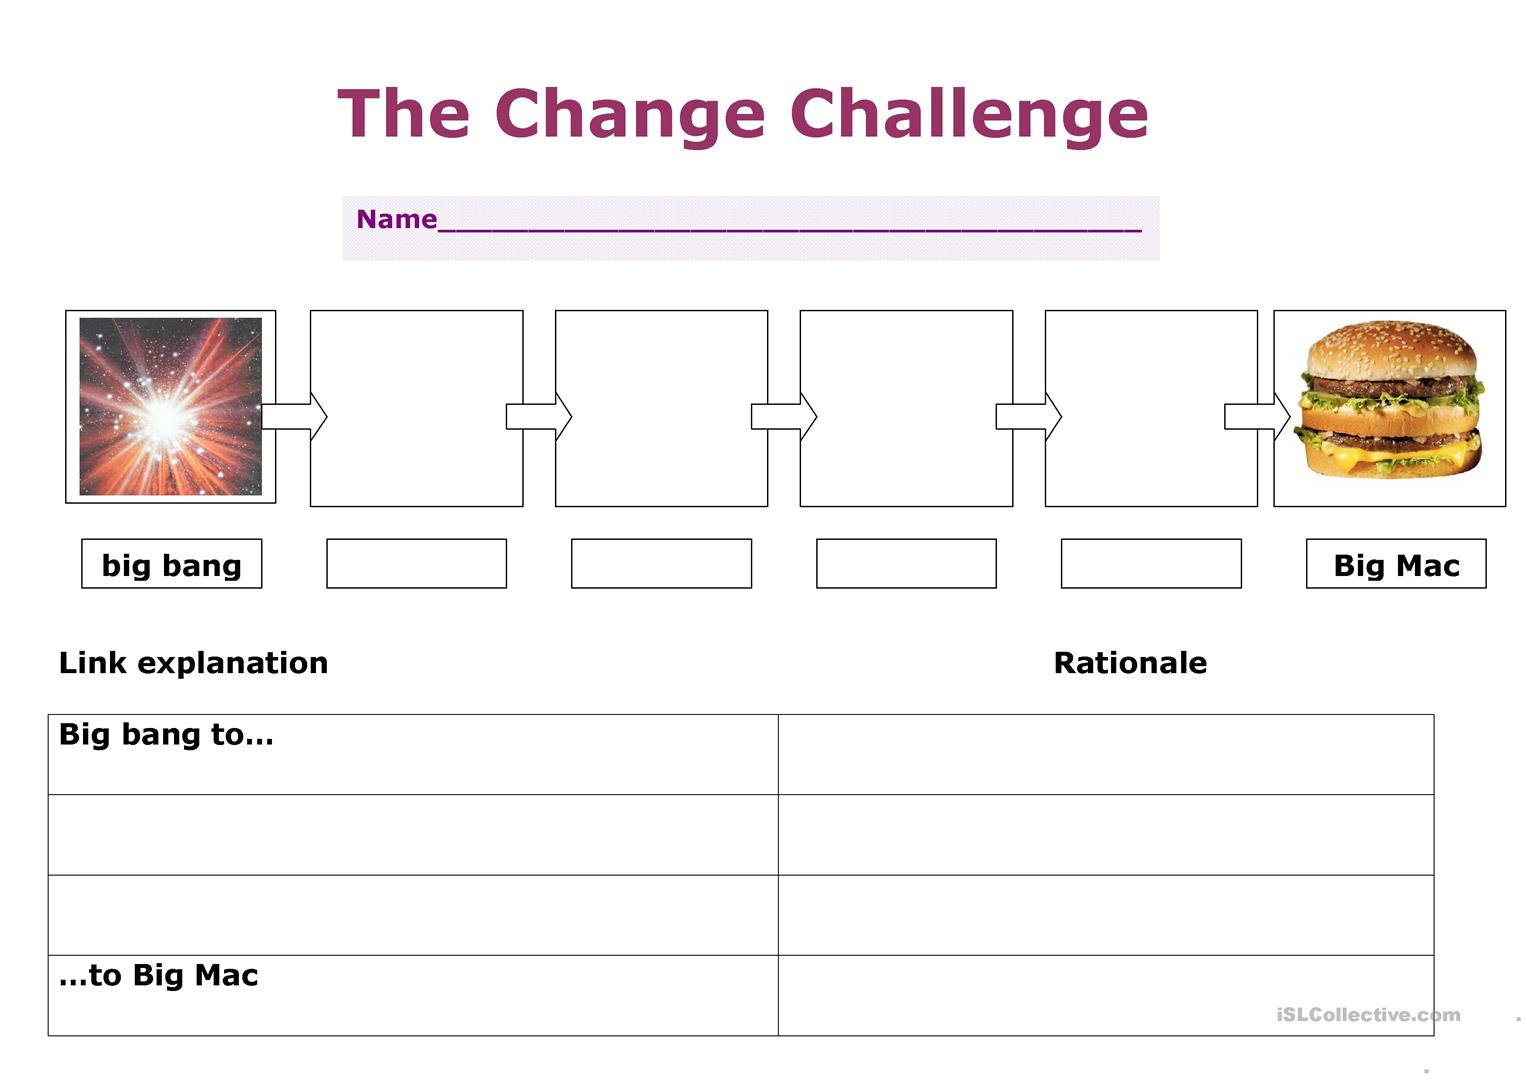 The Change Challenge Worksheet